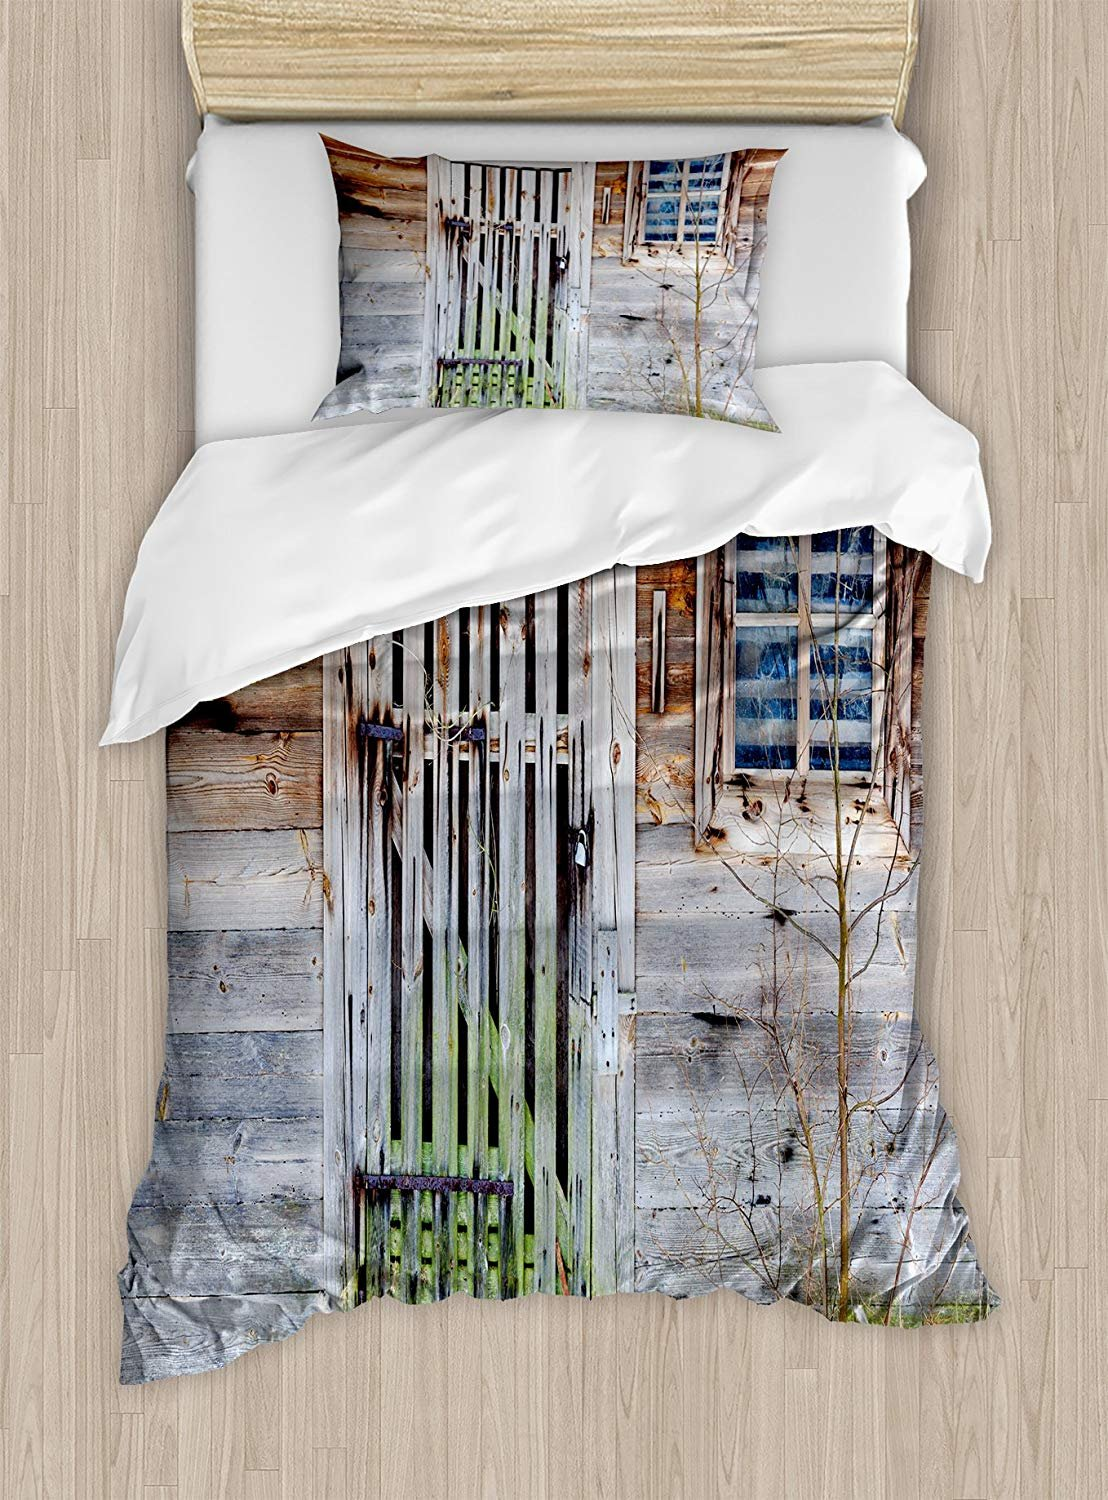 Big buy store Primitive Country Duvet Cover, Retro Neglected Old Farmhouse Rustic Wooden Door and Window Rural, Decorative 4 Piece Bedding Set with 2 Pillow Sham, Brown Green Silver(Twin)